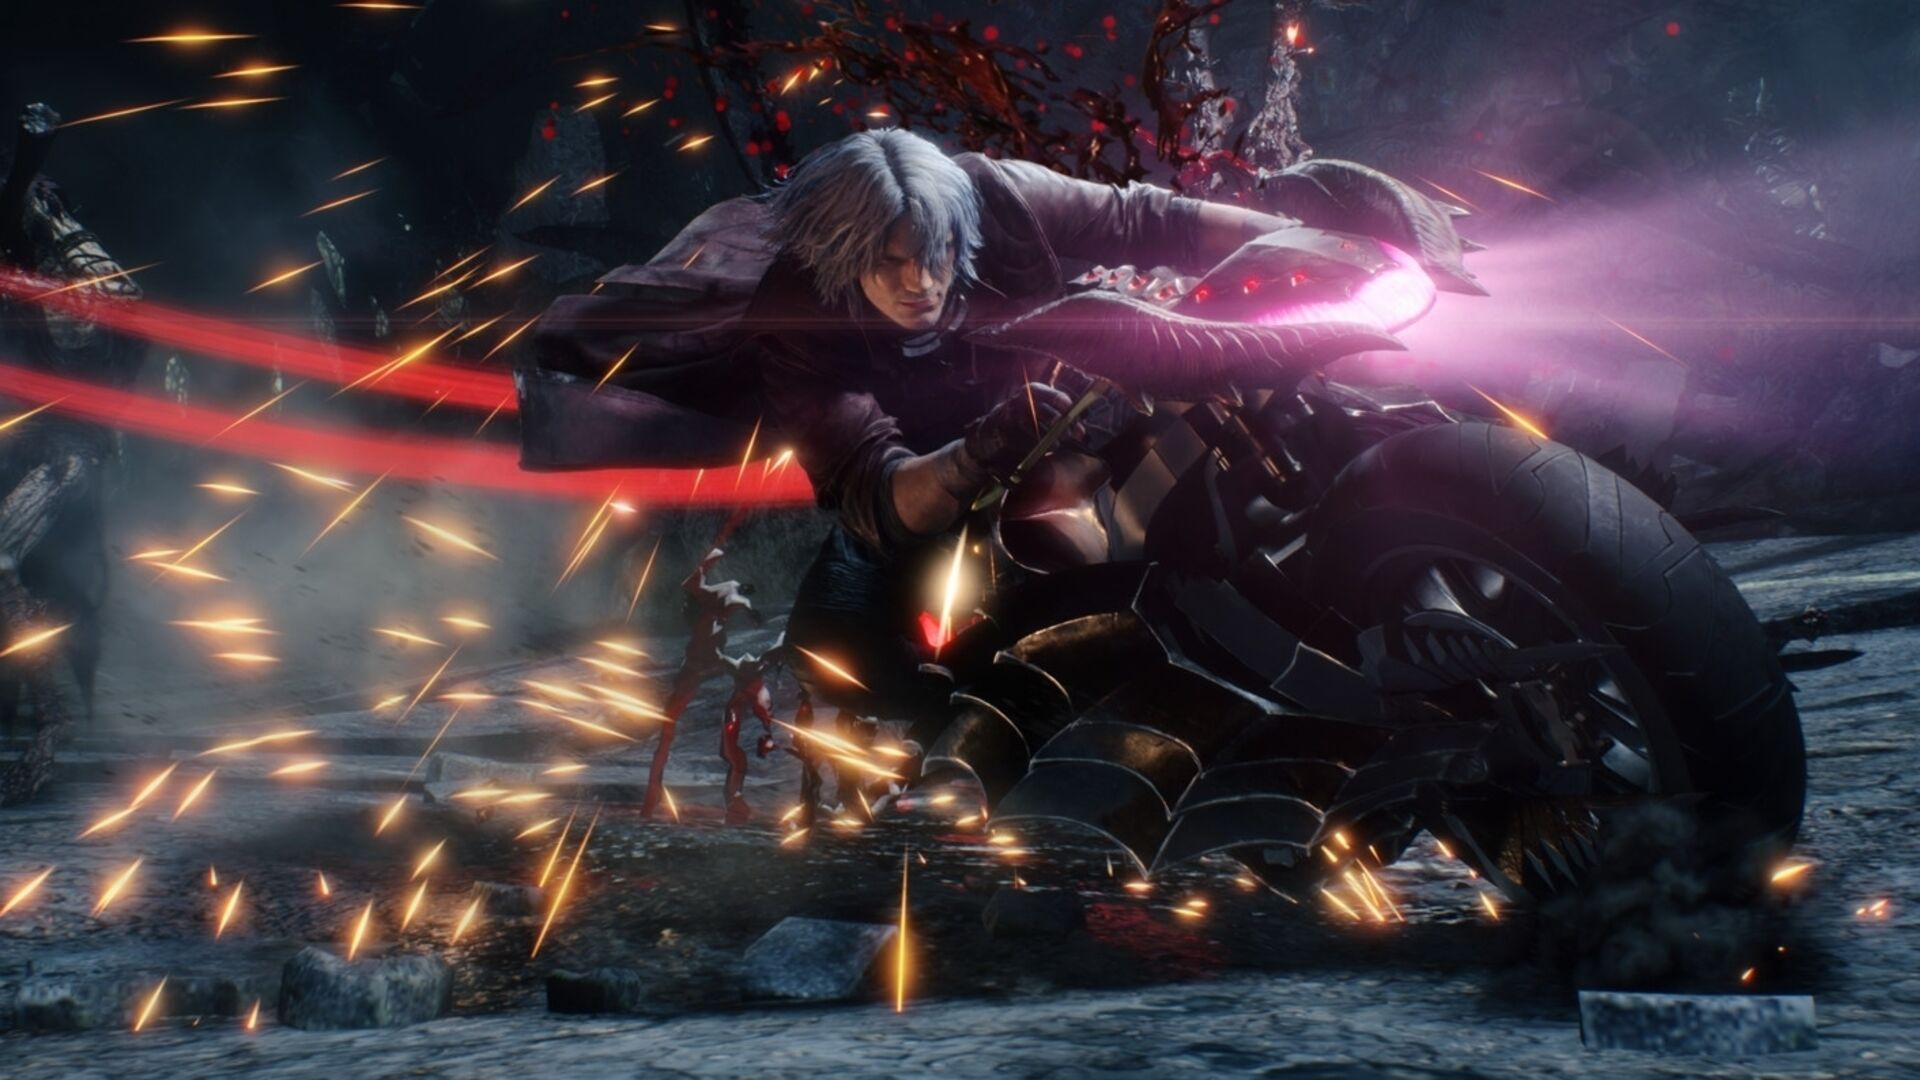 Fortnite Devil May Cry Devil May Cry 5 Fans Puzzled By Lens Flare Butt Cover Up Eurogamer Net